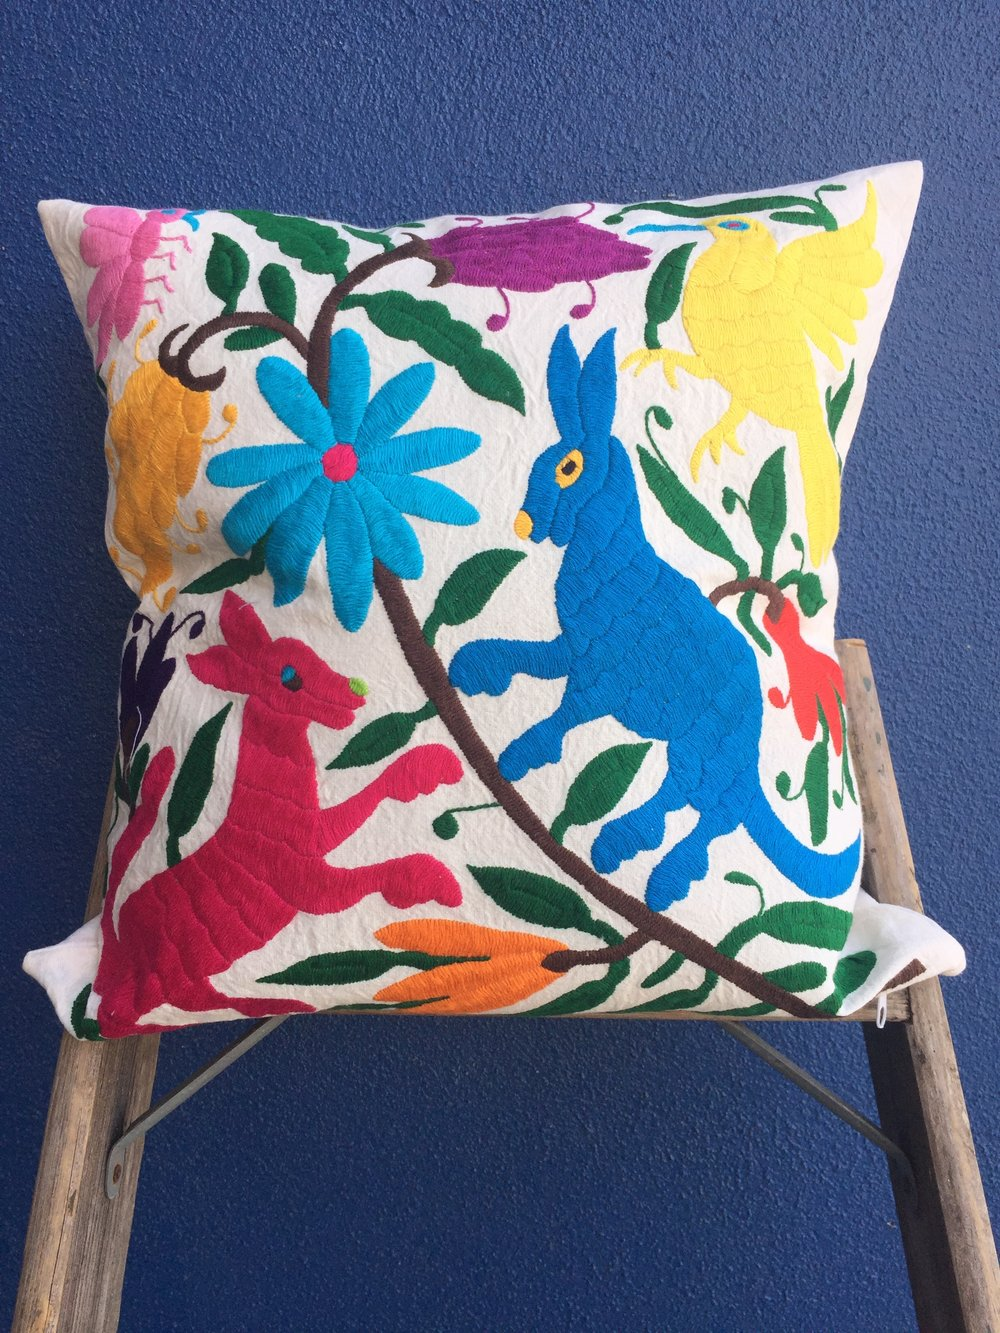 Dos Damas Otomi Throw Pillow // $80.00